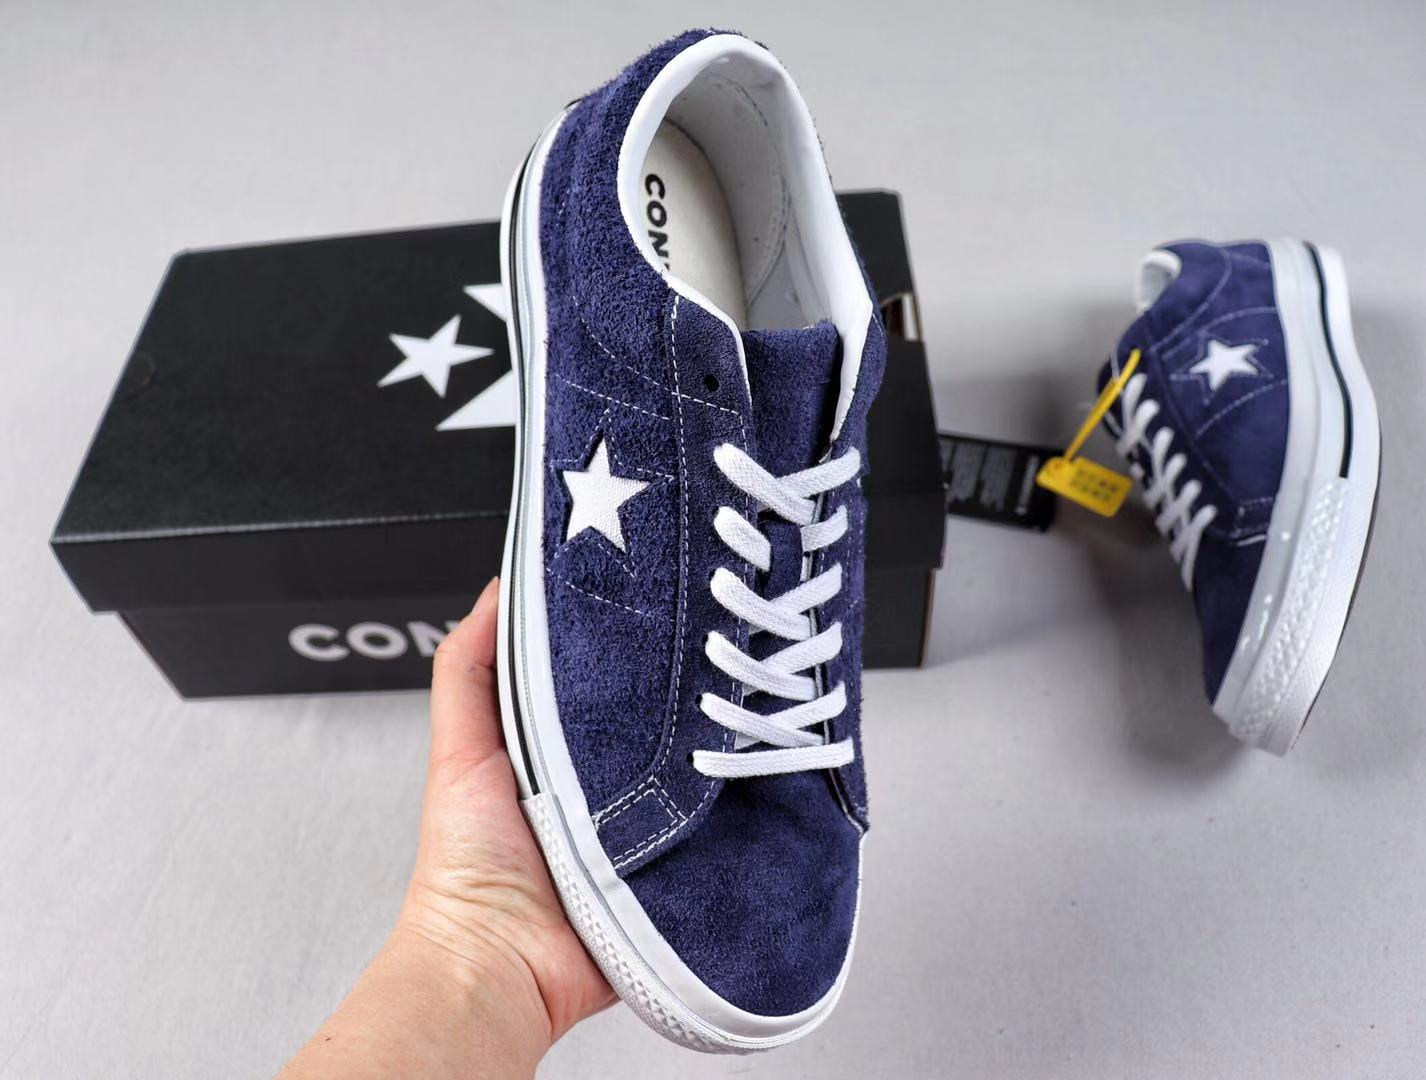 Converse One Star OX Cali Suede Low Blue-Purple/White Top Quality Shoes